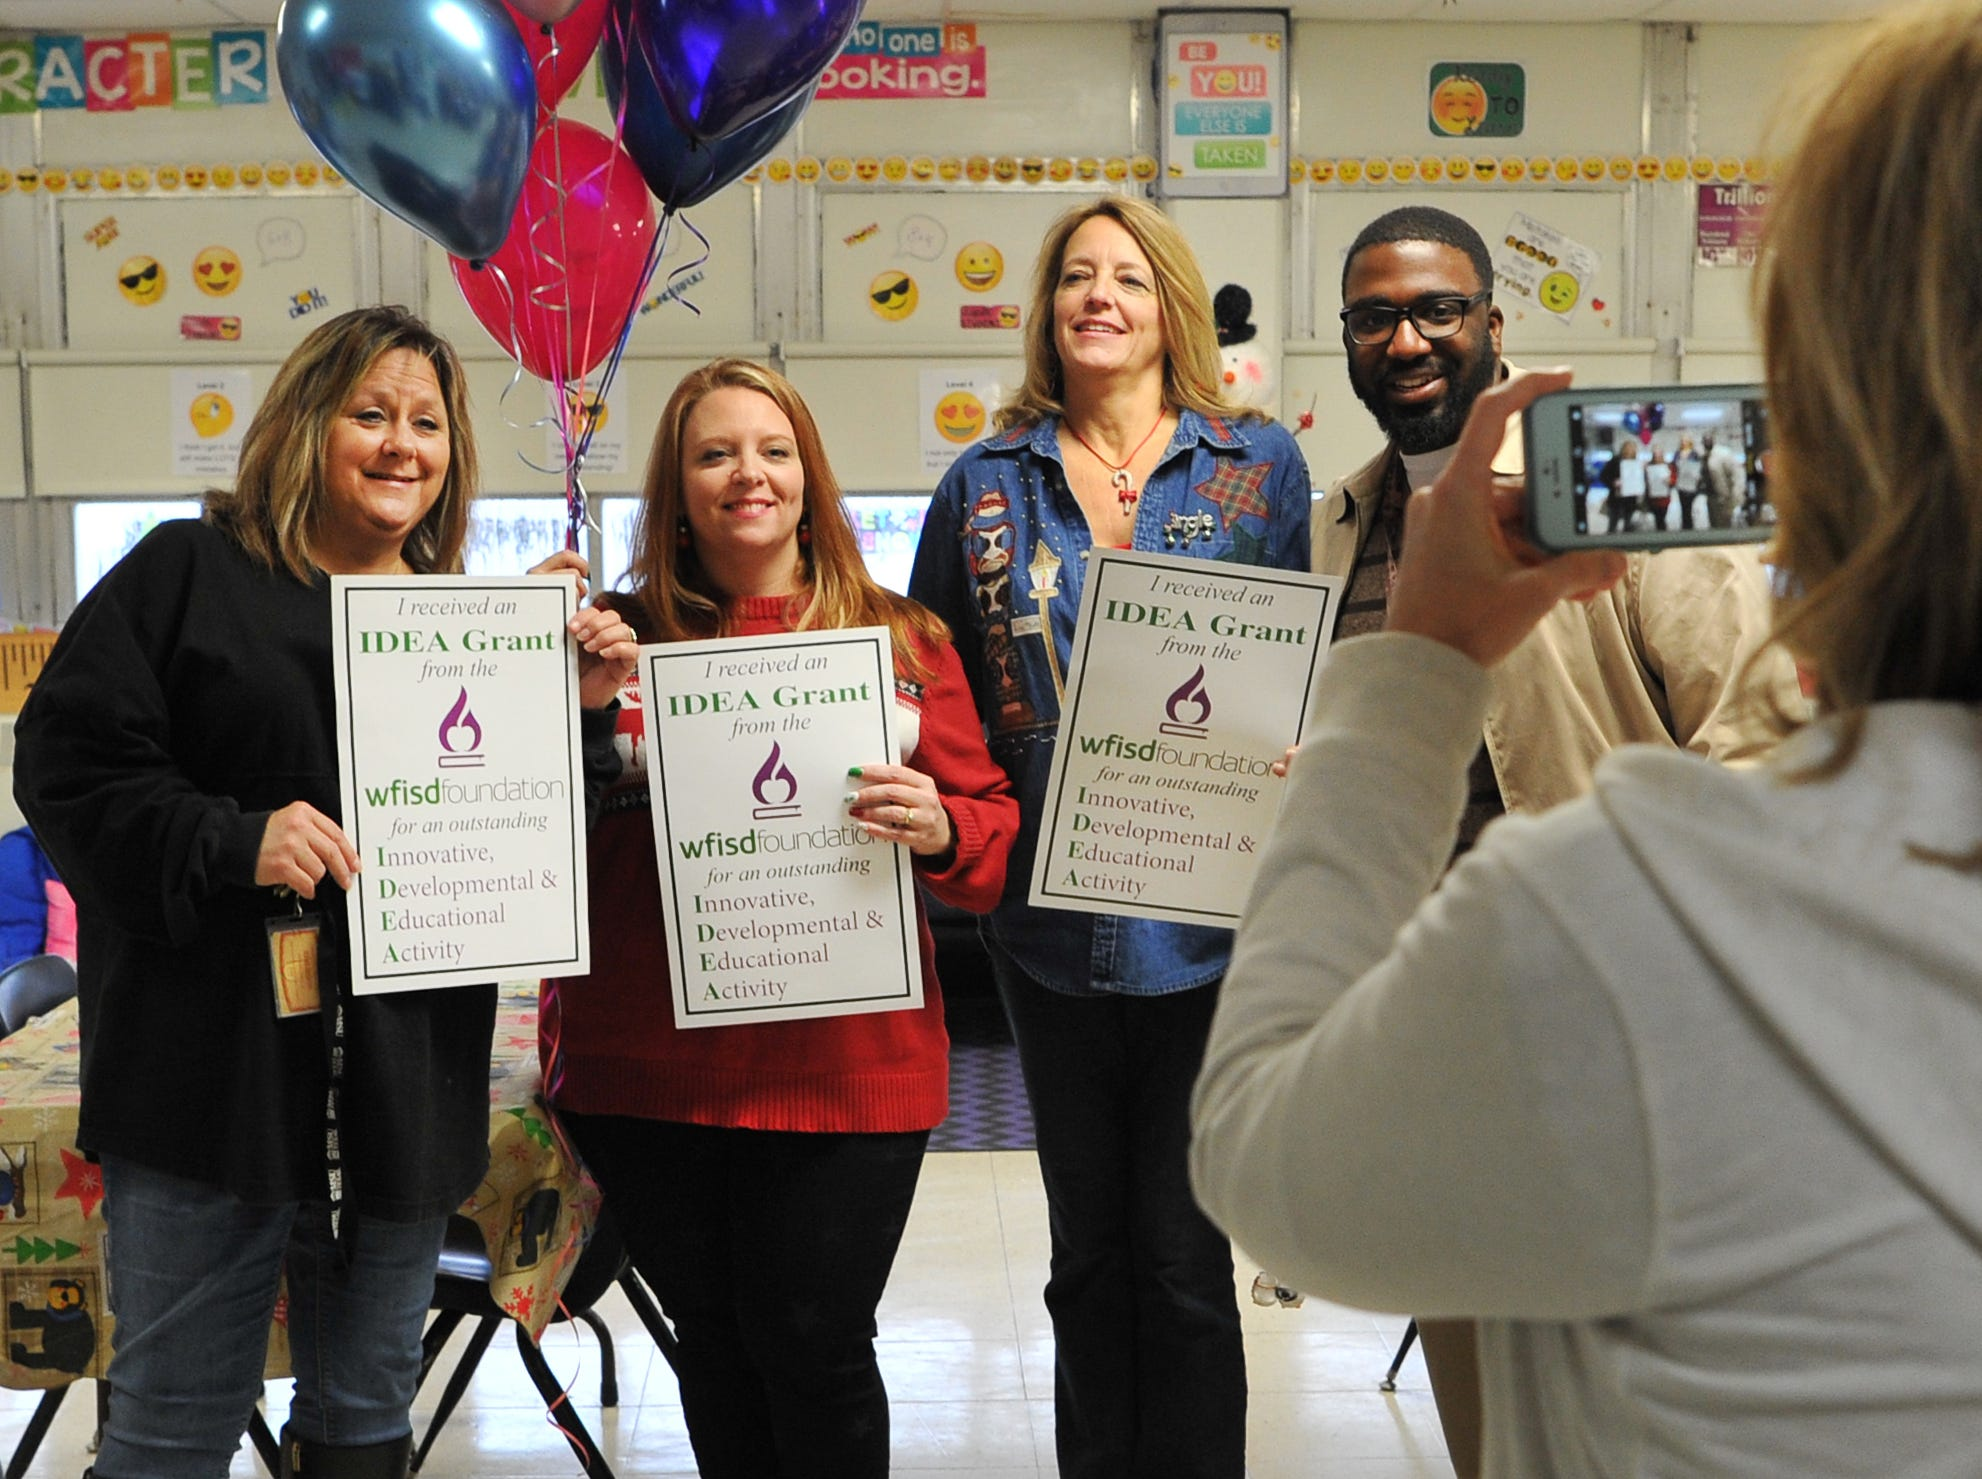 Booker T. Washington Elementary 5th grade teachers, from left: Angela Nunn, Kellie Hare, Janet Hughes, and principal Mark Davis pose for a photograph, Friday morning after receiving an IDEA Grant.